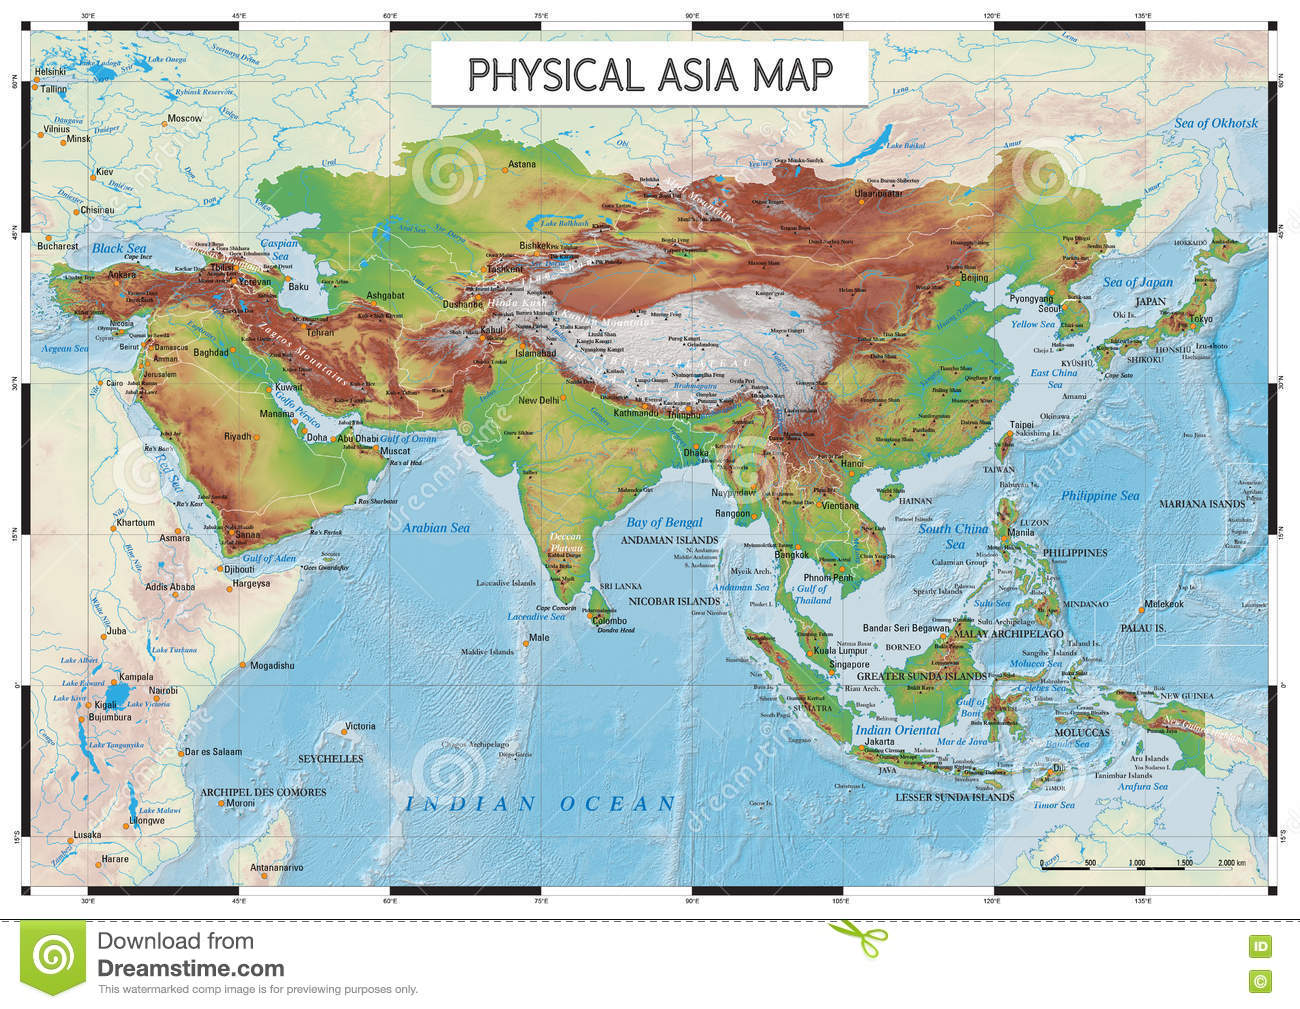 Big Map Of Asia.Physical Asia Map Stock Vector Illustration Of Physical 80885750